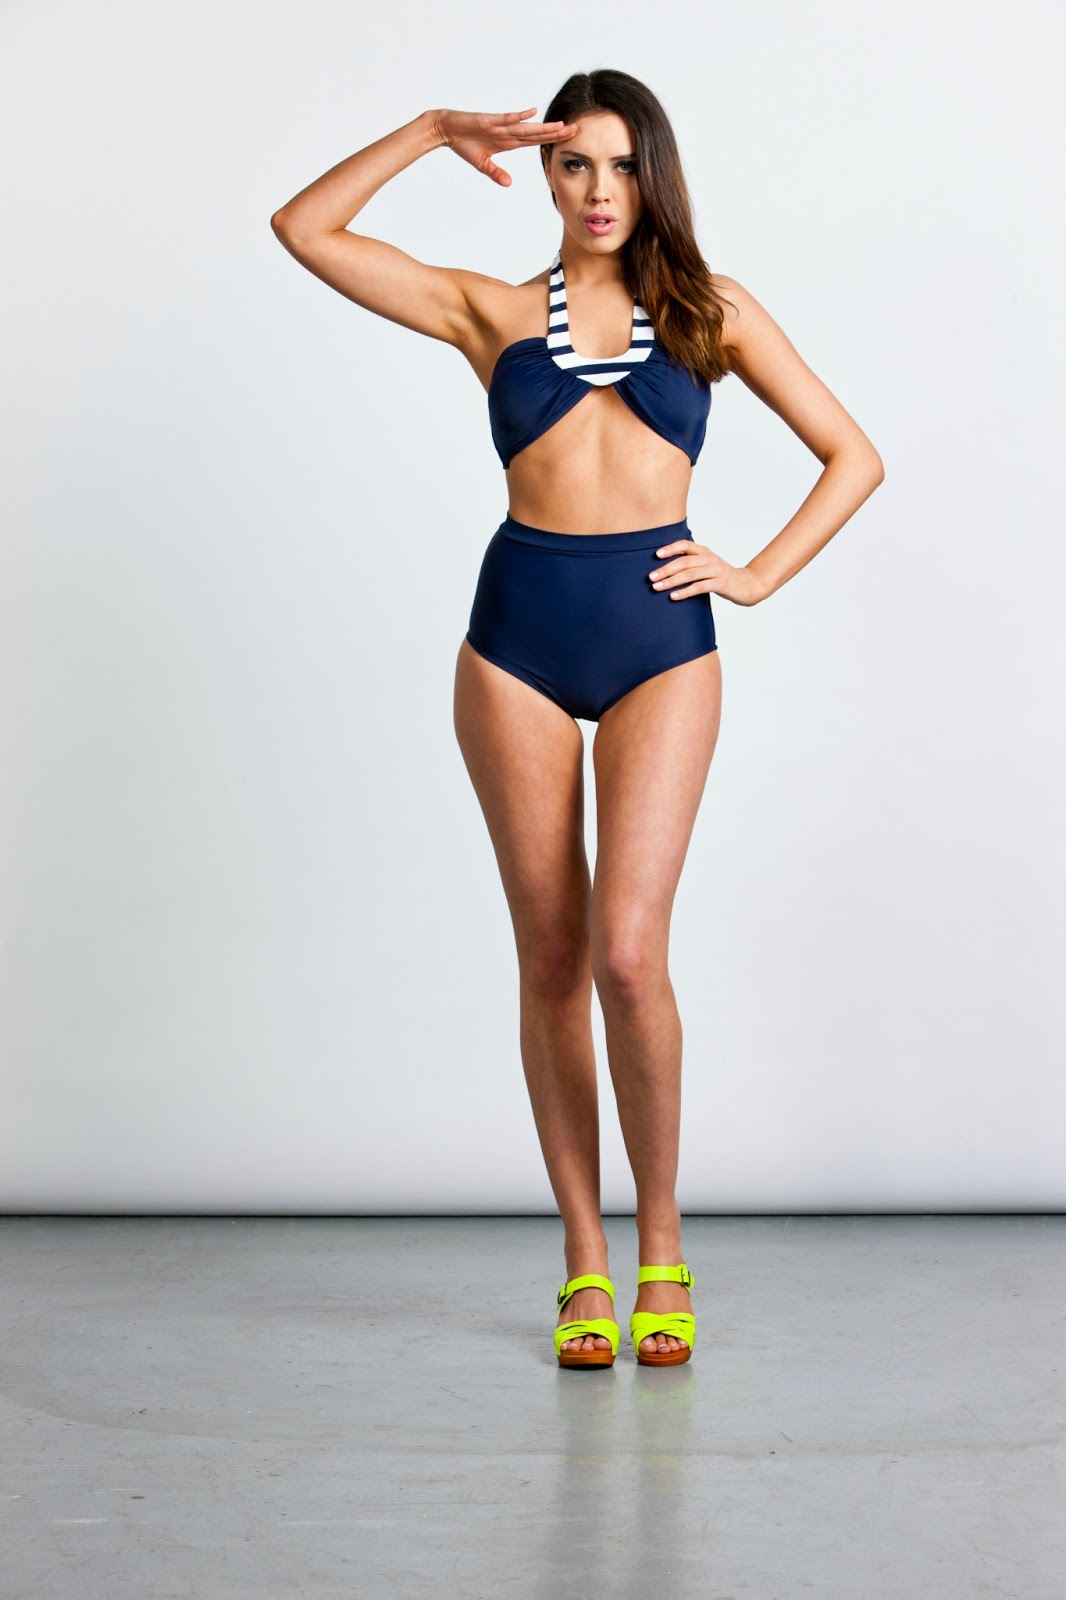 cool wow wow high quality images hot bikini trends 2013